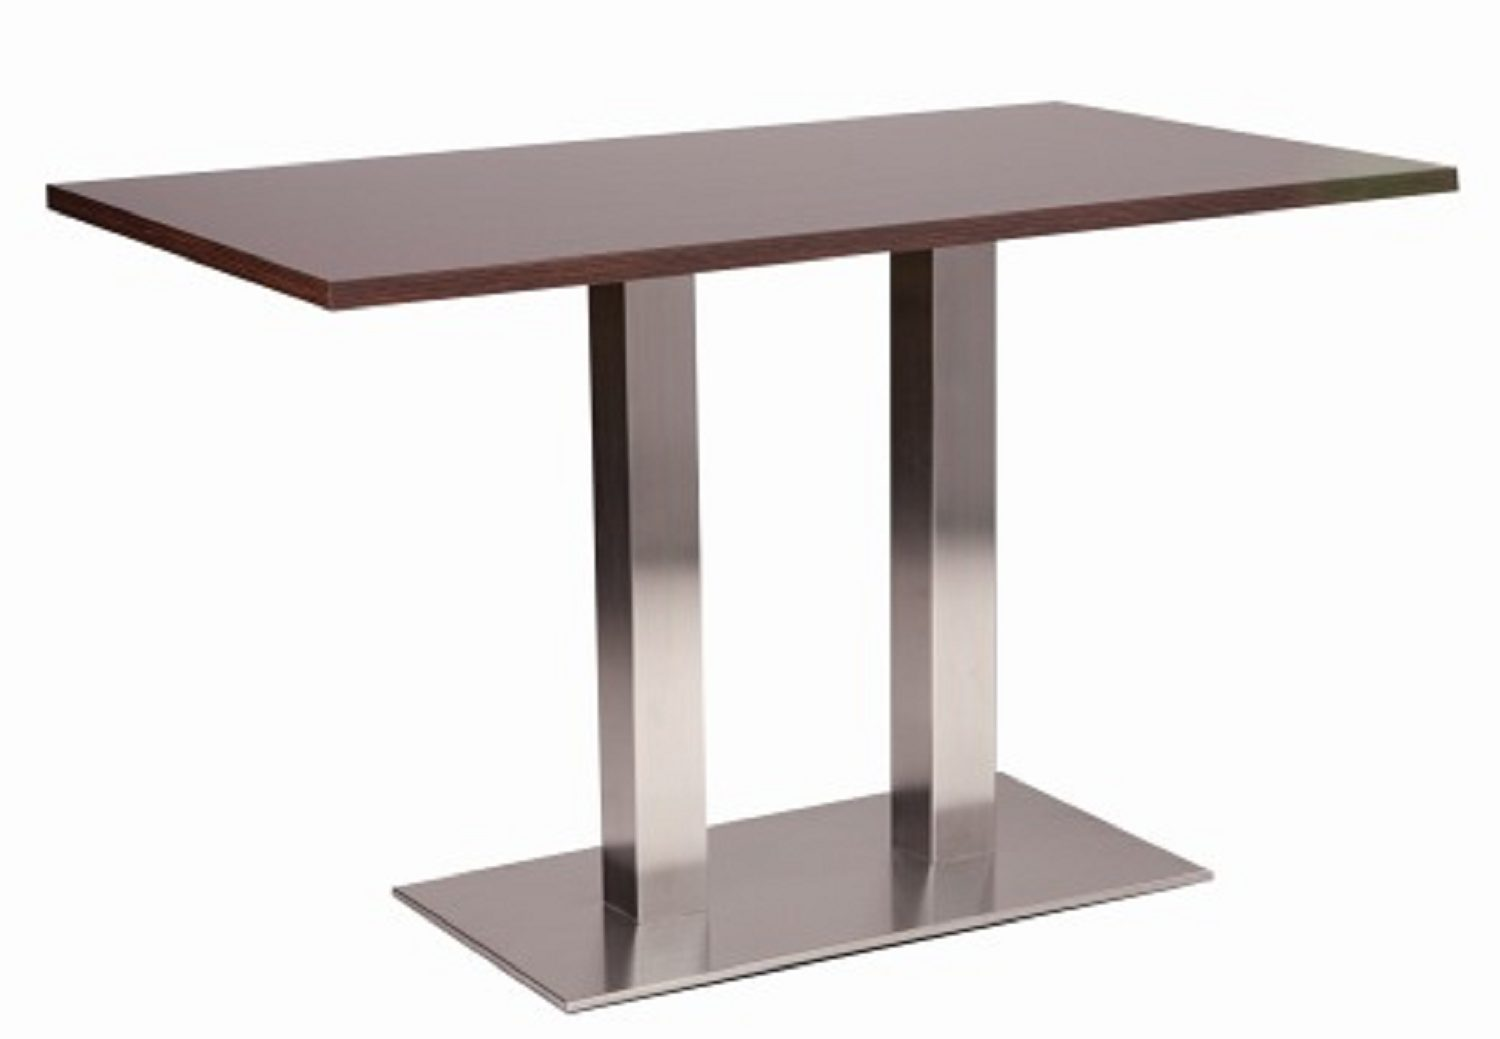 Picture of: Hafren Contract Furniture Hafren Contract Danilo Twin Pedestal Table With Solid Wood Top Contract Tables Hafren Furnishers